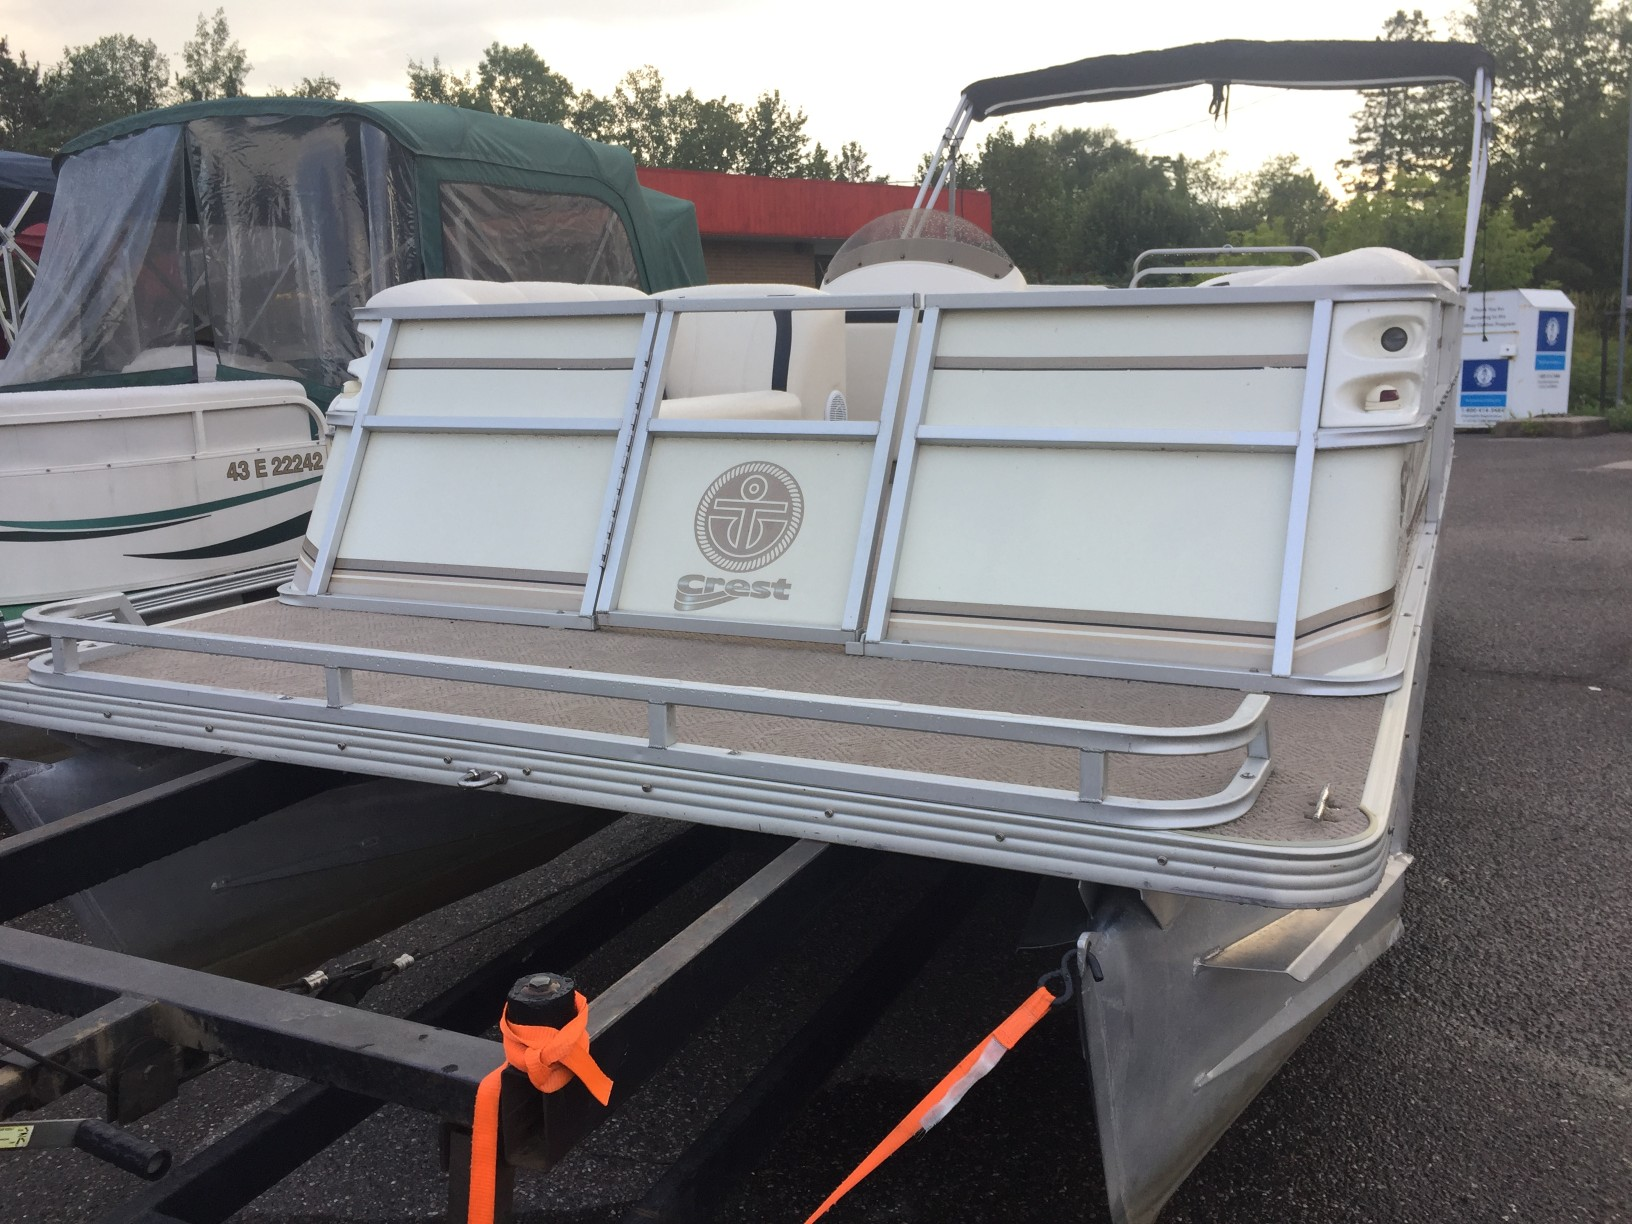 Awesome Bring Your Own Trailer Photo - Classic Cars Ideas - boiq.info